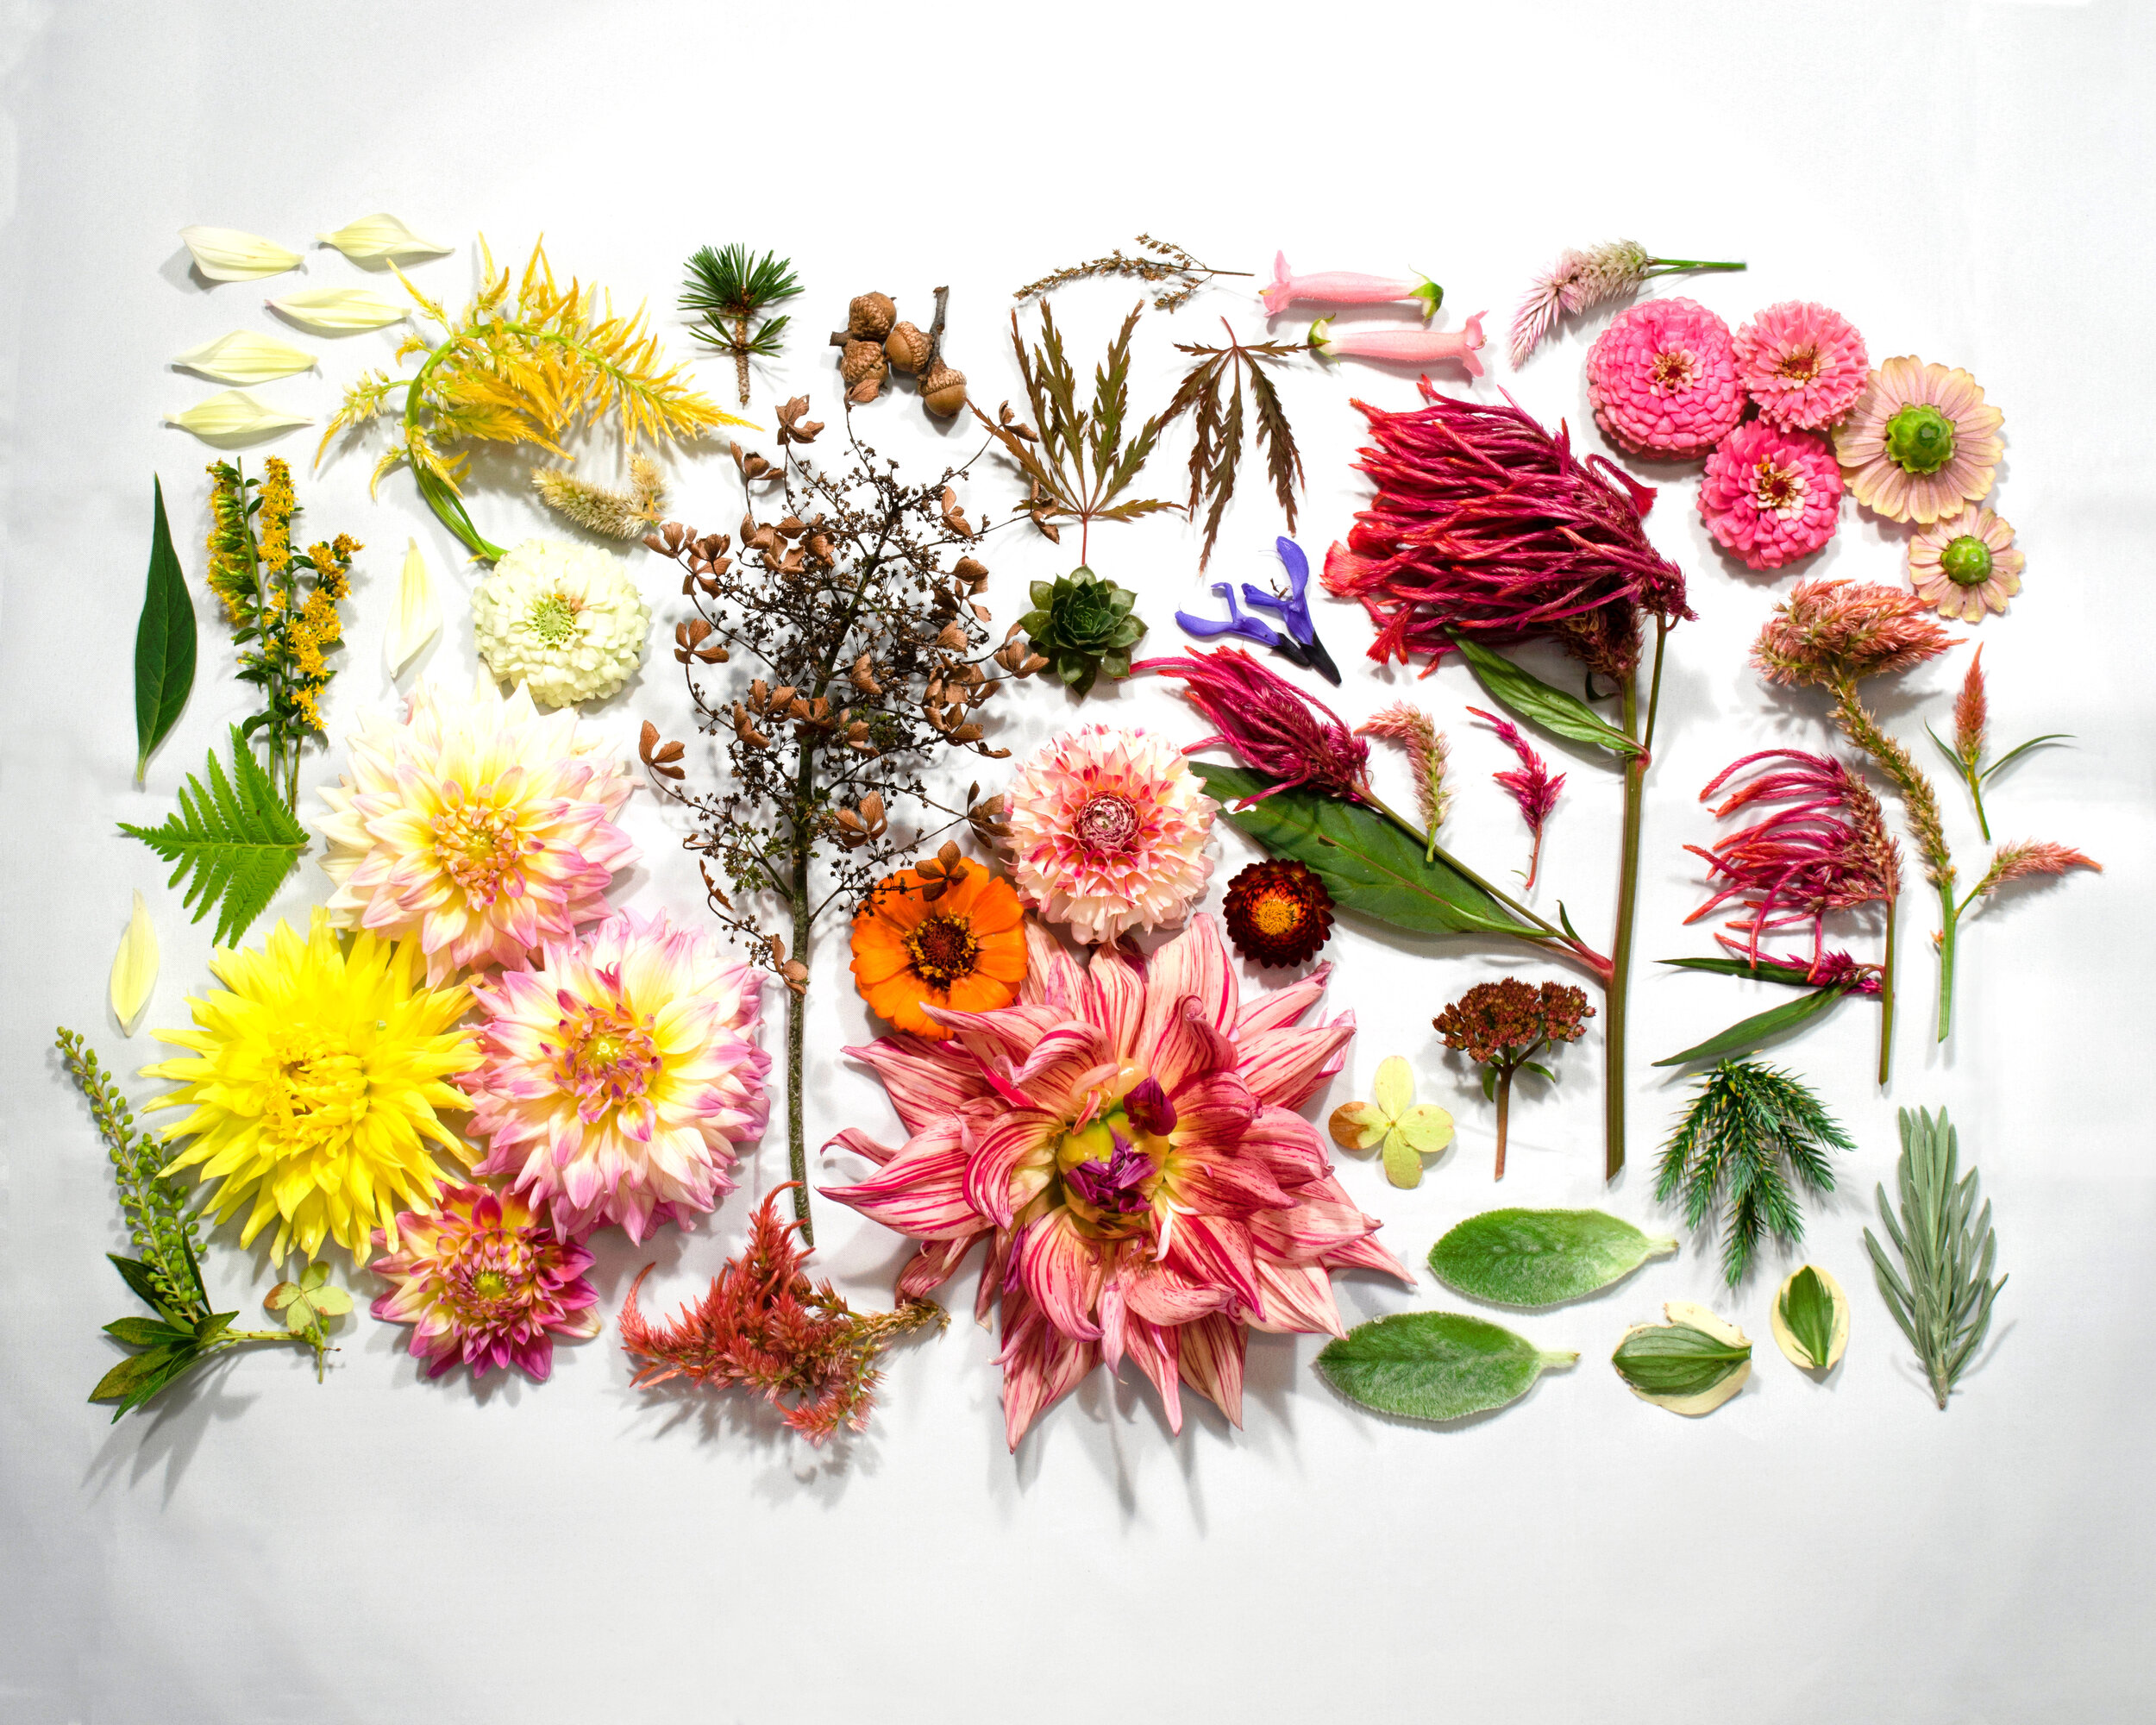 371 Dover Drive - Dahlia-lover's dream photo. This flat-lay collection of flowers from 371 Dover Drive was photographed in 2018 and printed on post-industrial cotton fibers with no-VOC ink. The archival quality print will brighten any room.